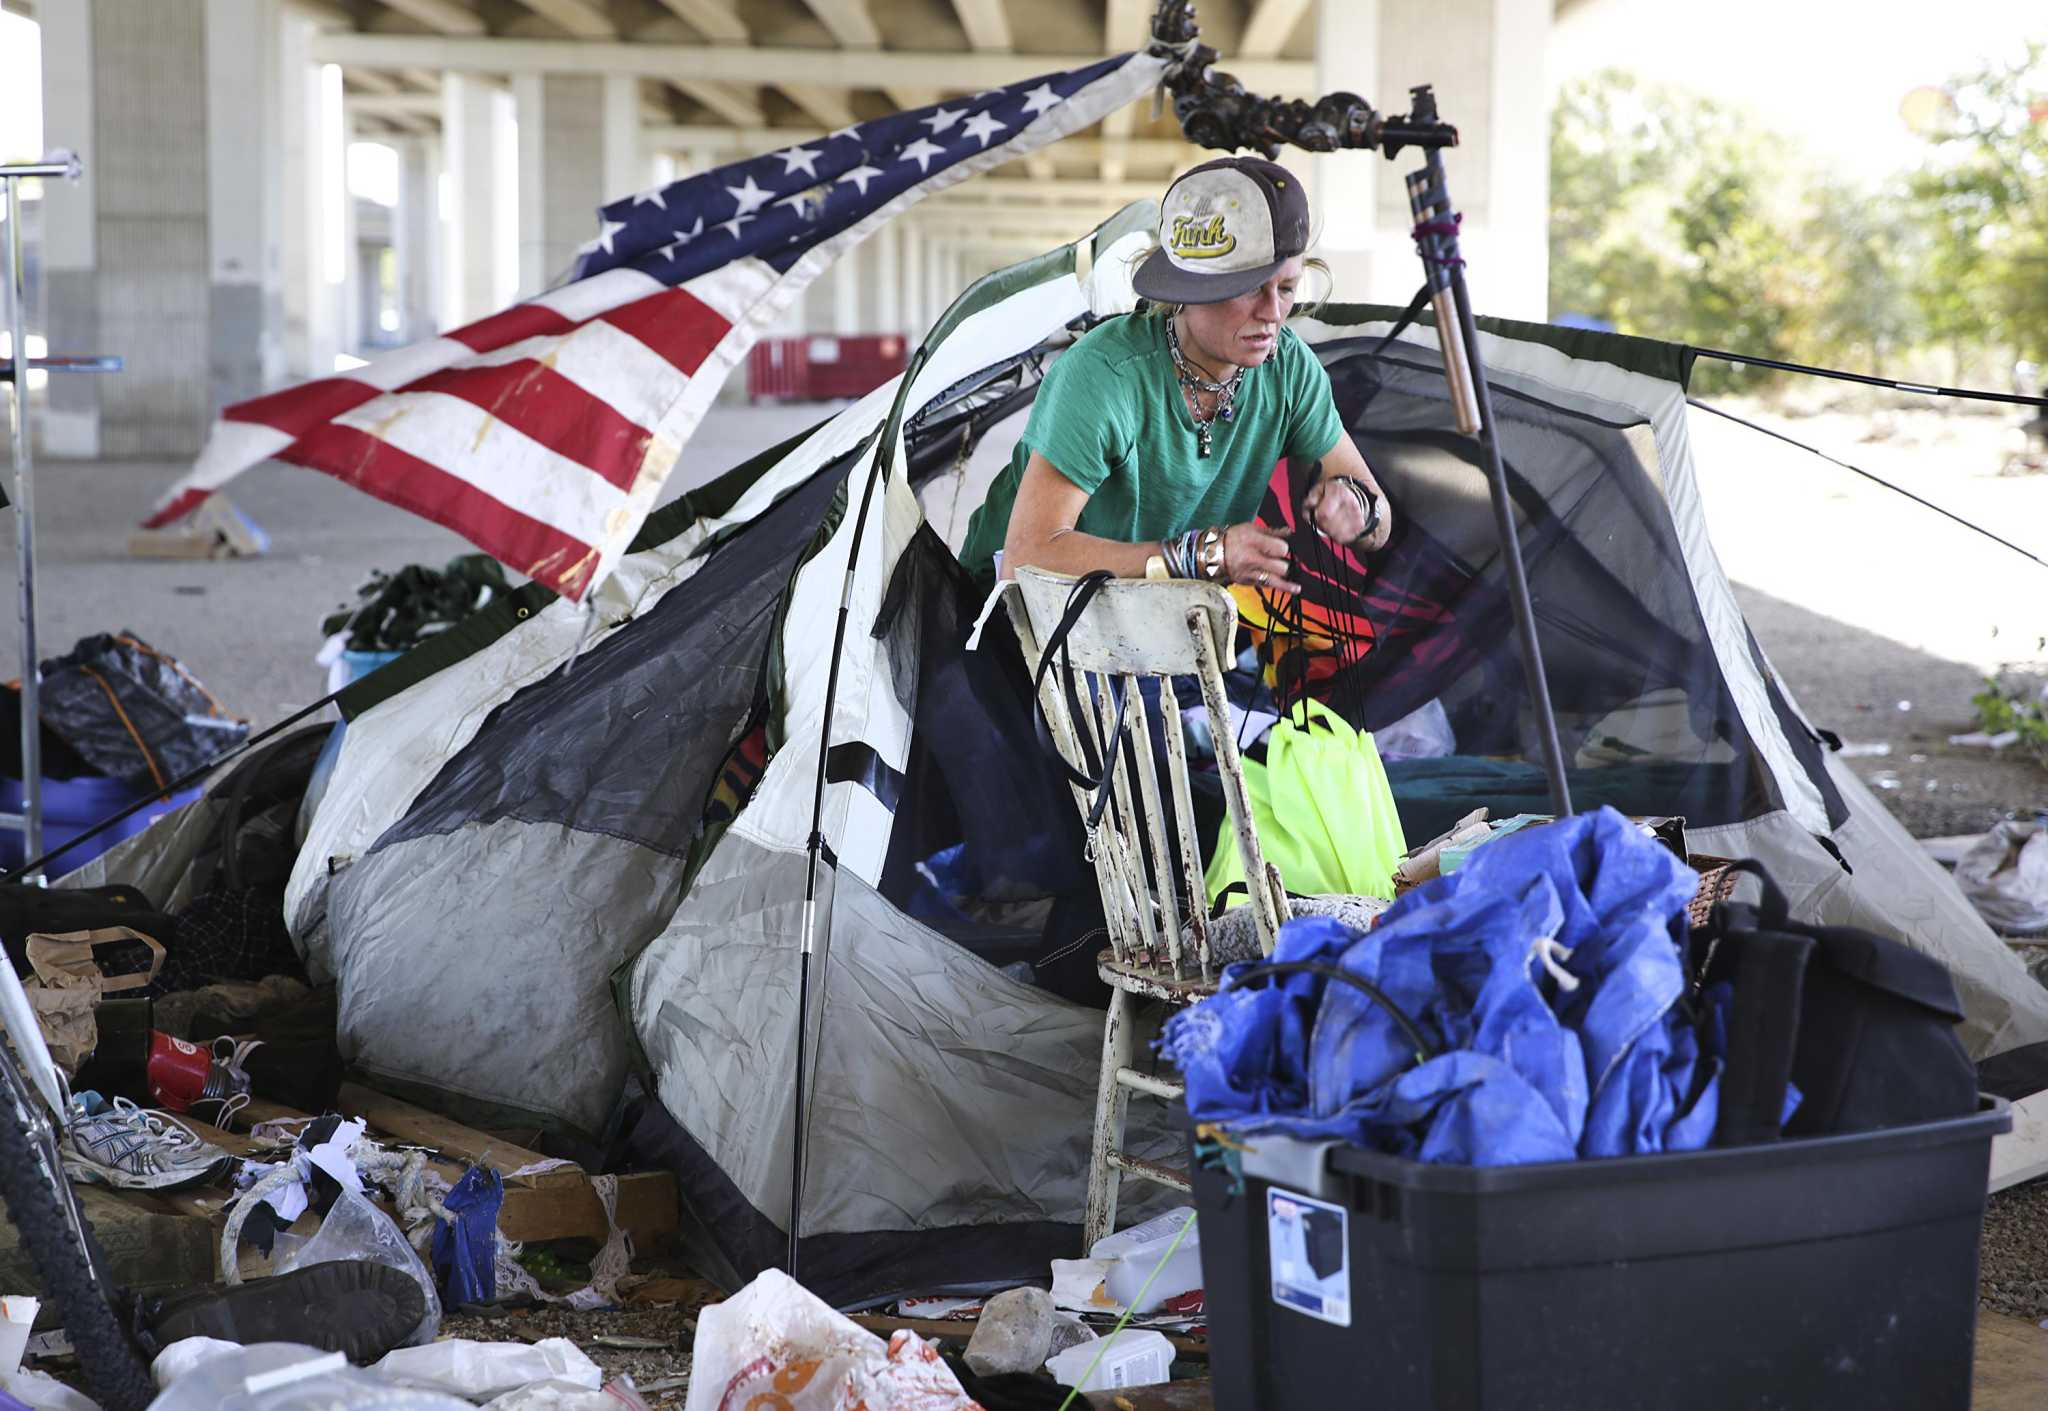 Has Austin removed legal consequences for where the 'homeless lie, sleep ... defecate?'